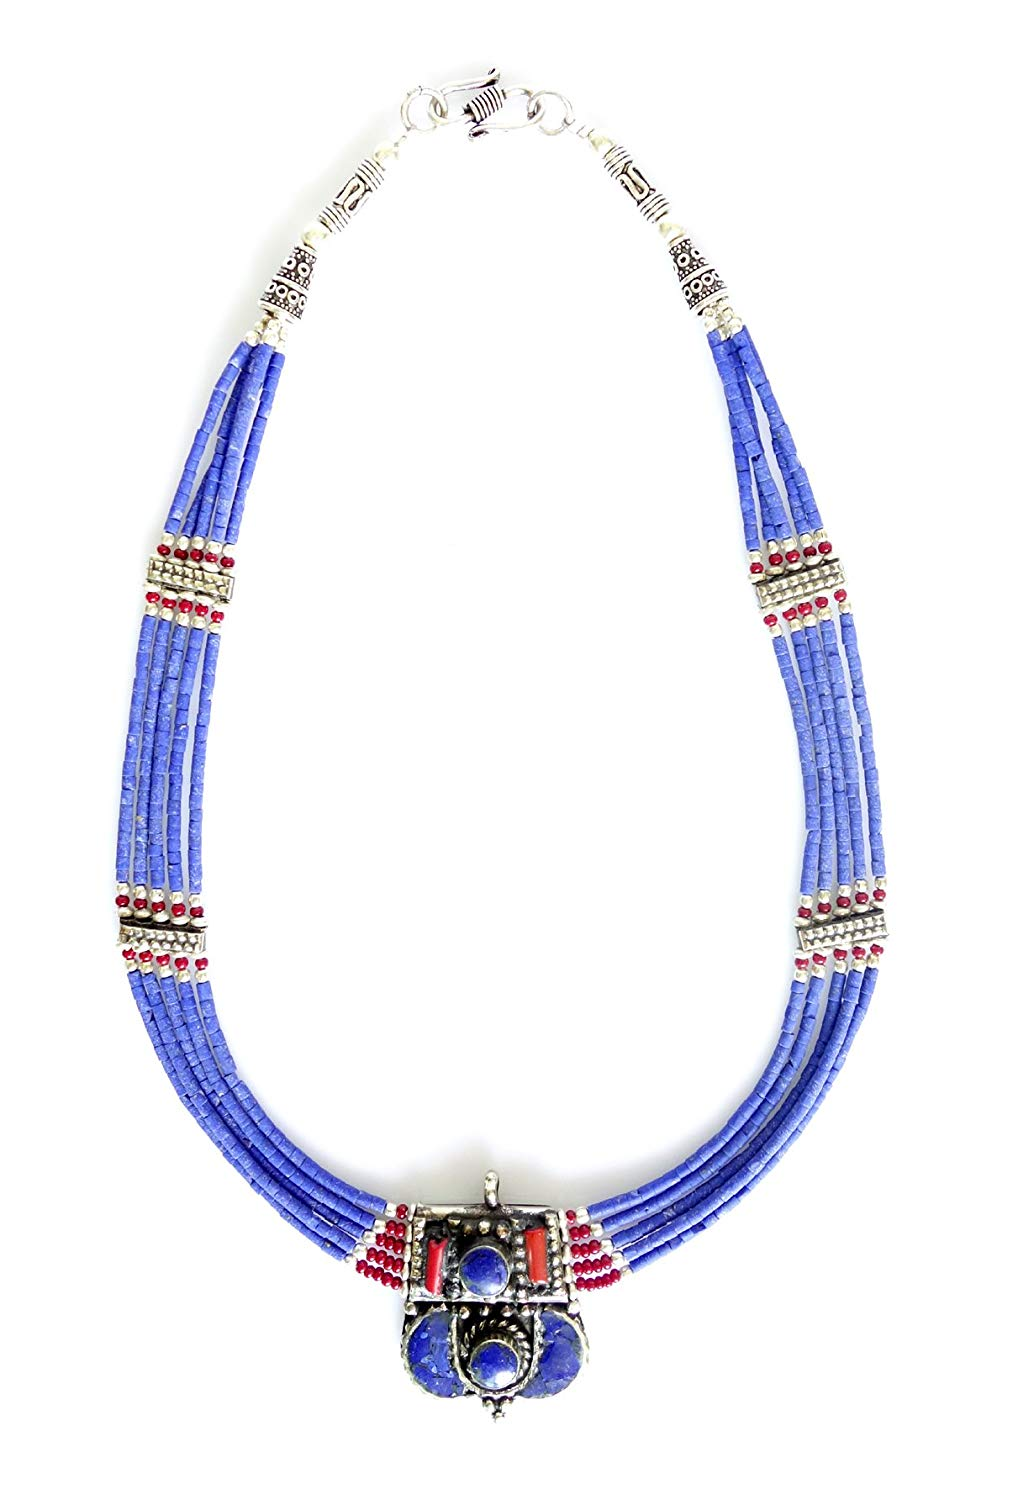 Tibetan Silver BLUE LAPIS LAZULI GEMSTONE ANTIQUE BUDDHIST BOHEMIAN FASHION HANDMADE NECKLACE JEWELRY ETHNIC GYPSY TRIBAL FUSION COLLAR MULTIPLE STRAND NECKLACE FOR WOMAN